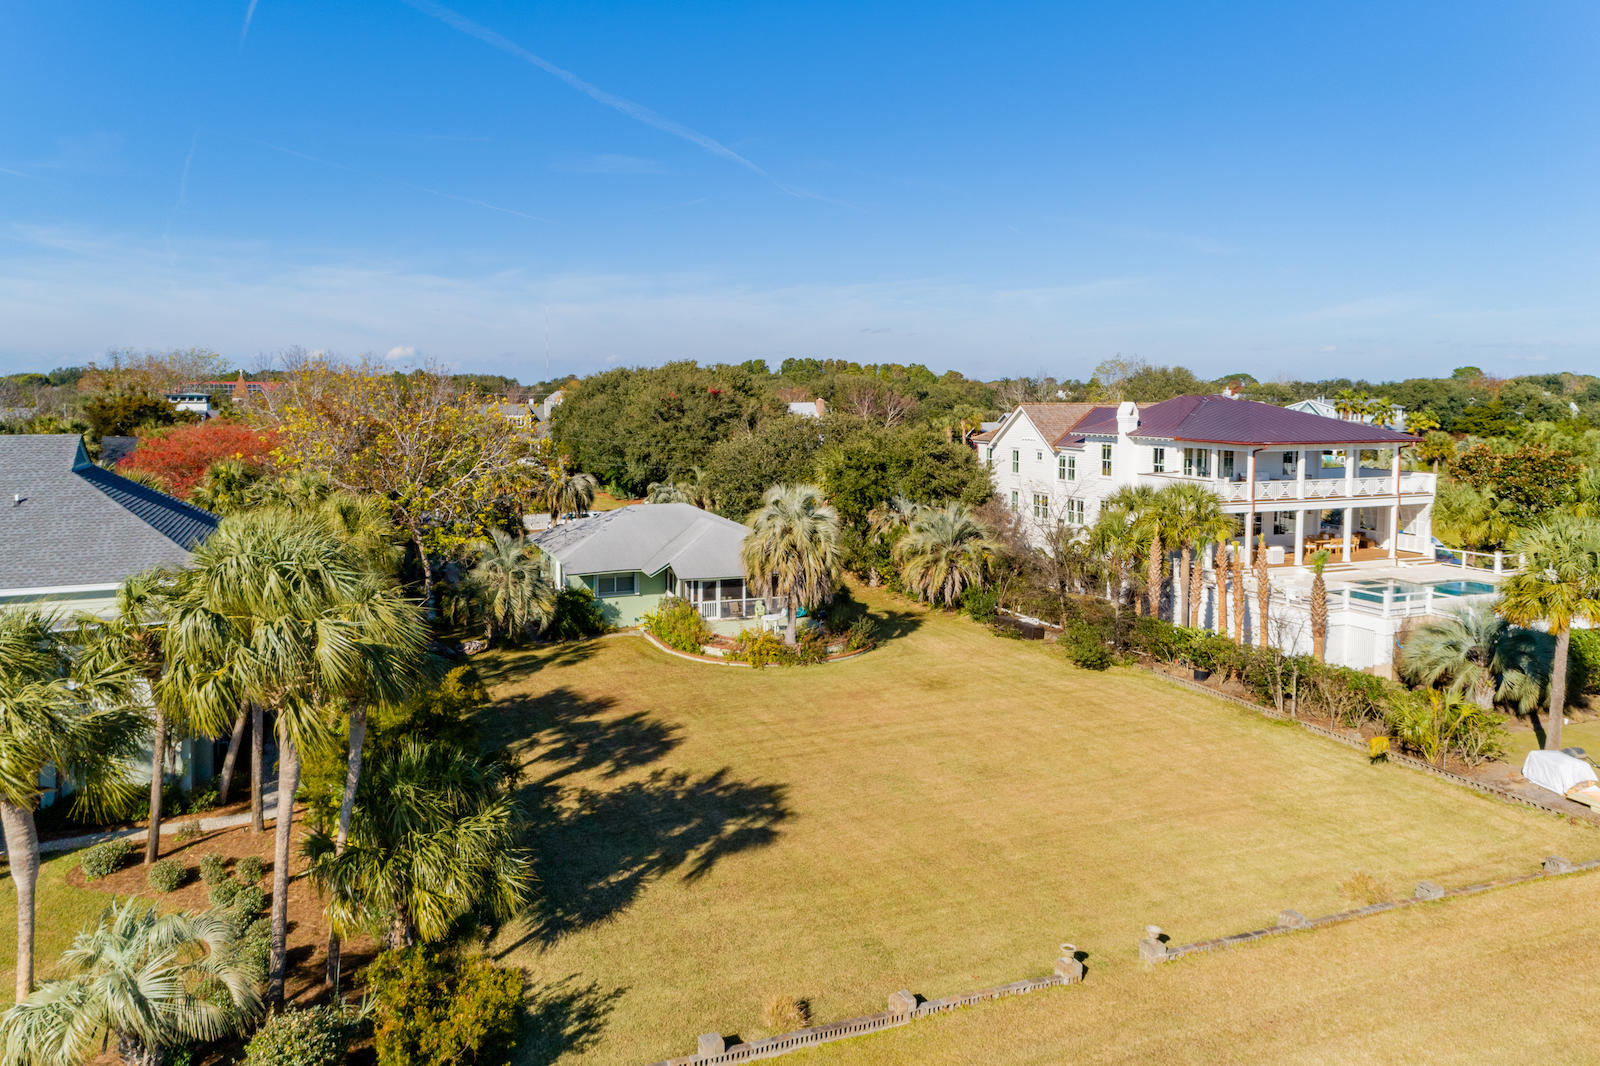 Sullivans Island Homes For Sale - 2525 Atlantic, Sullivans Island, SC - 4